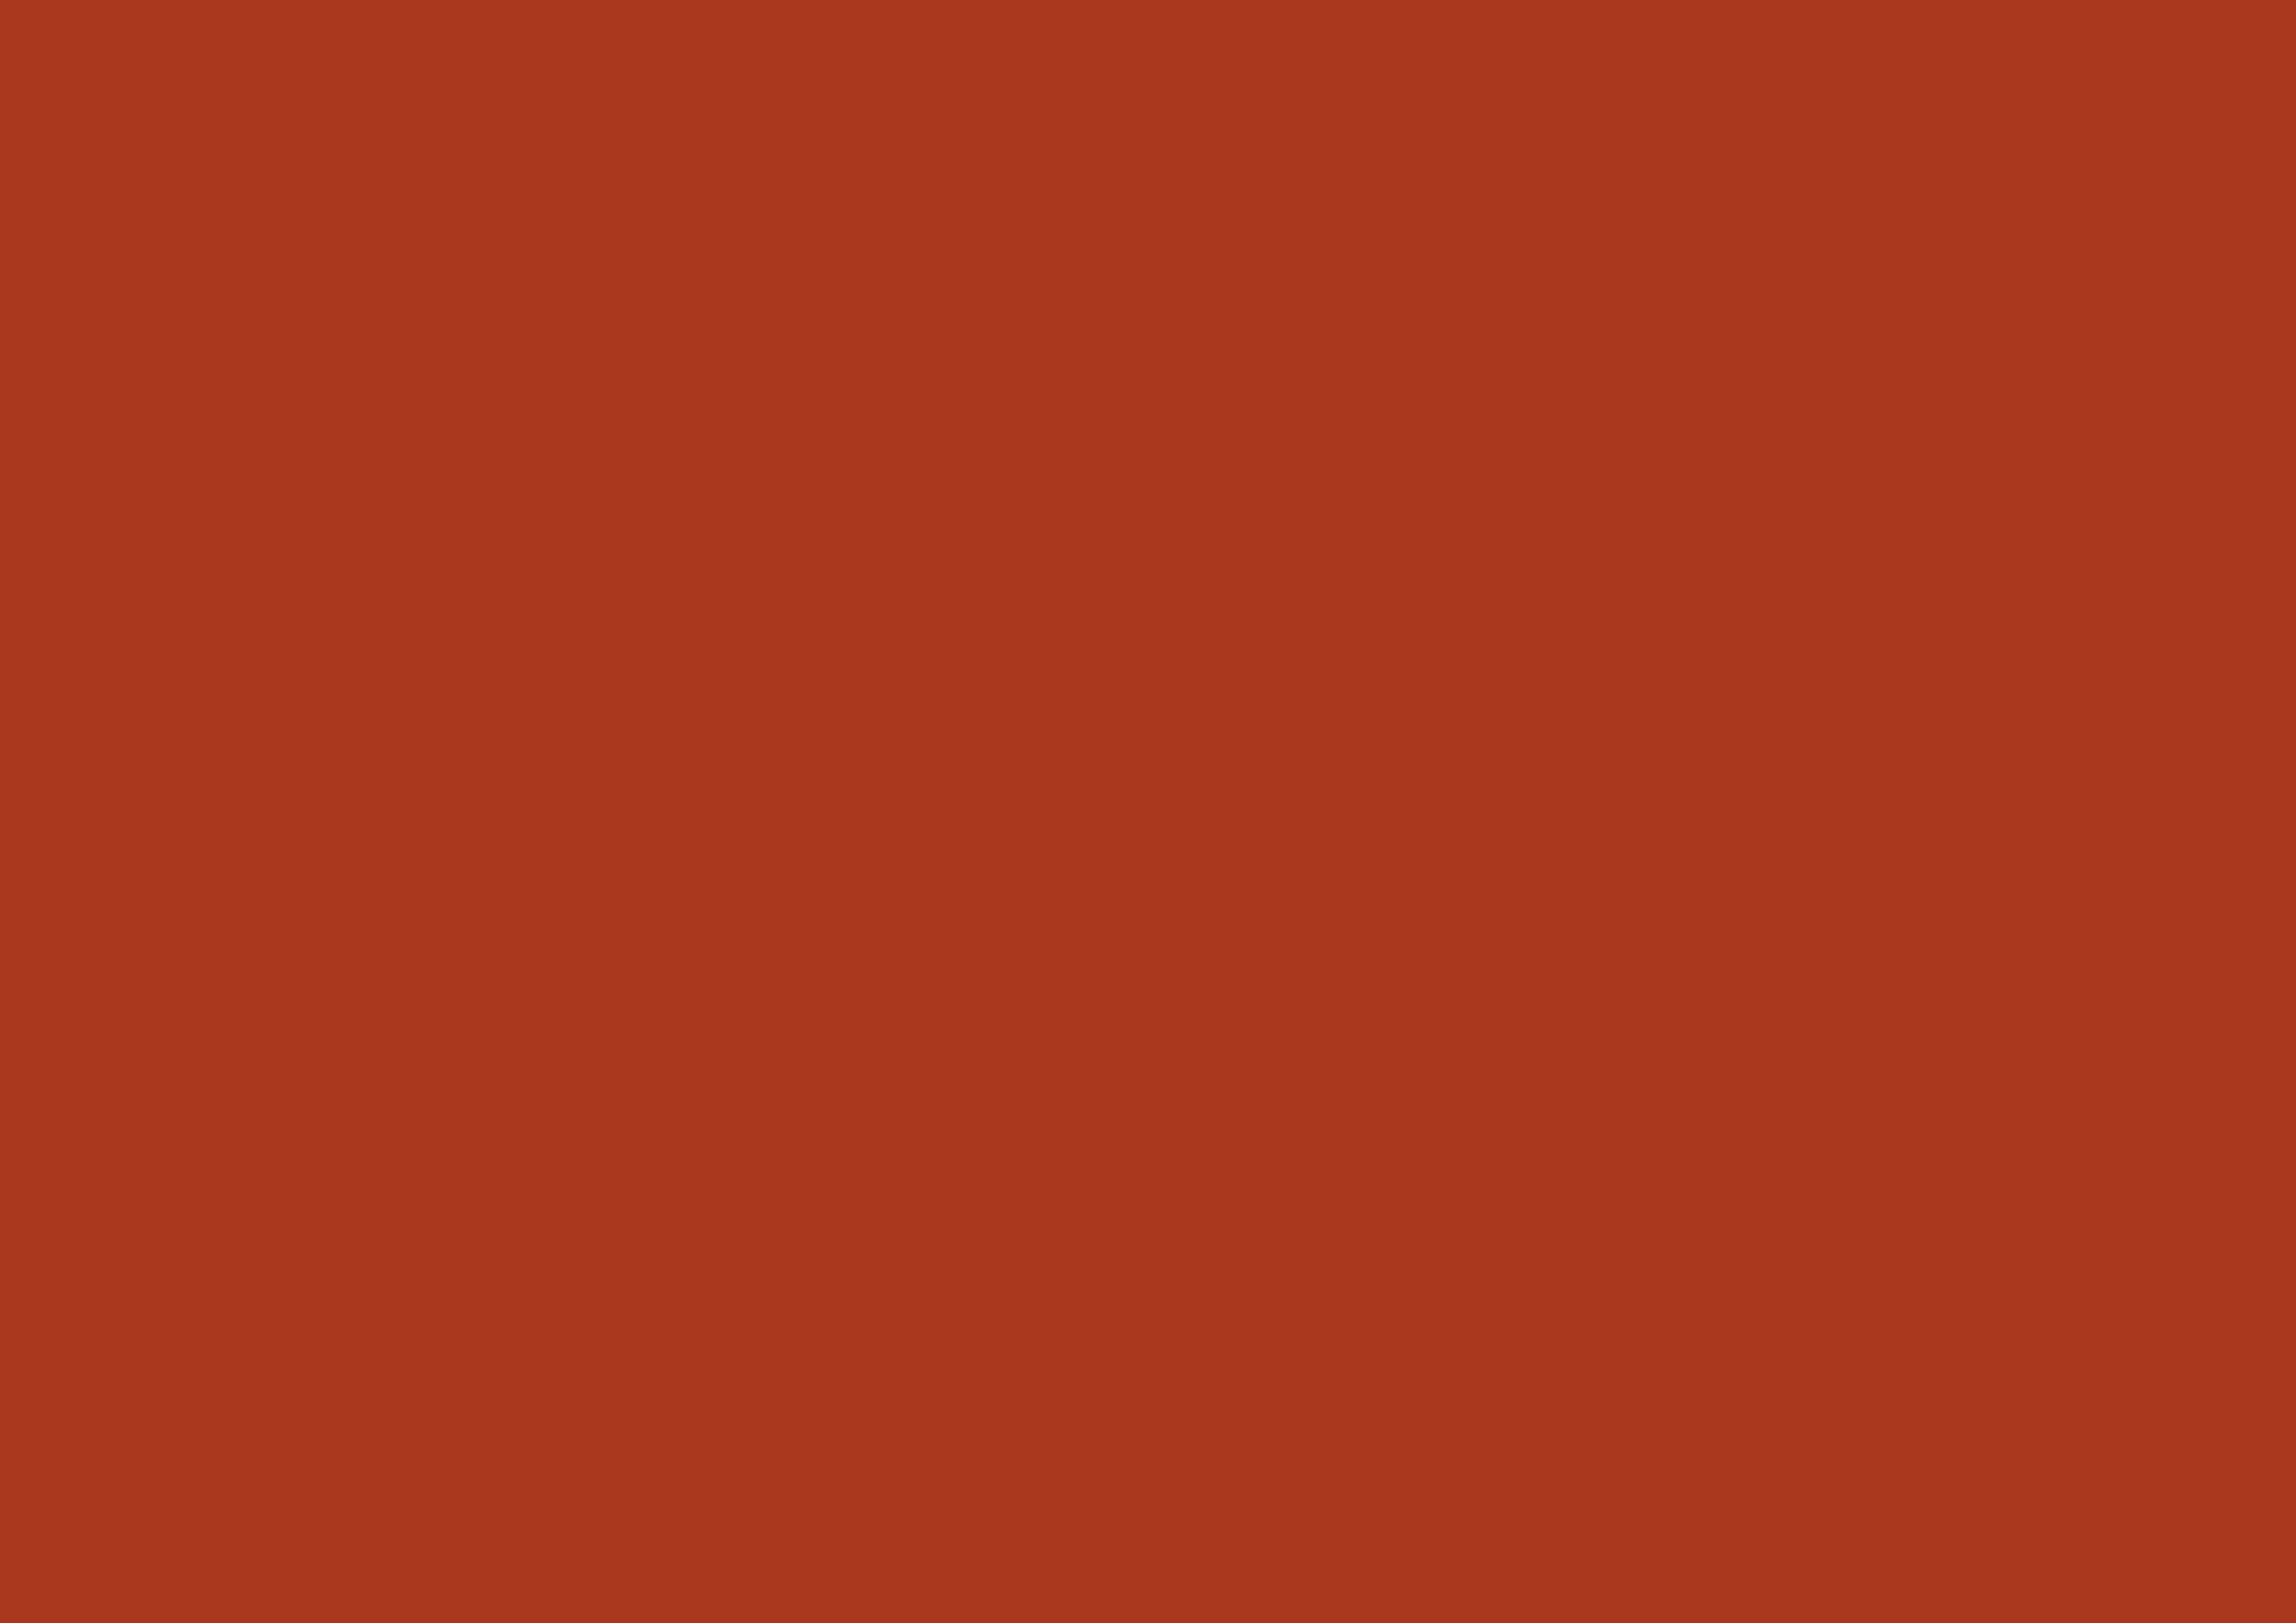 3508x2480 Chinese Red Solid Color Background